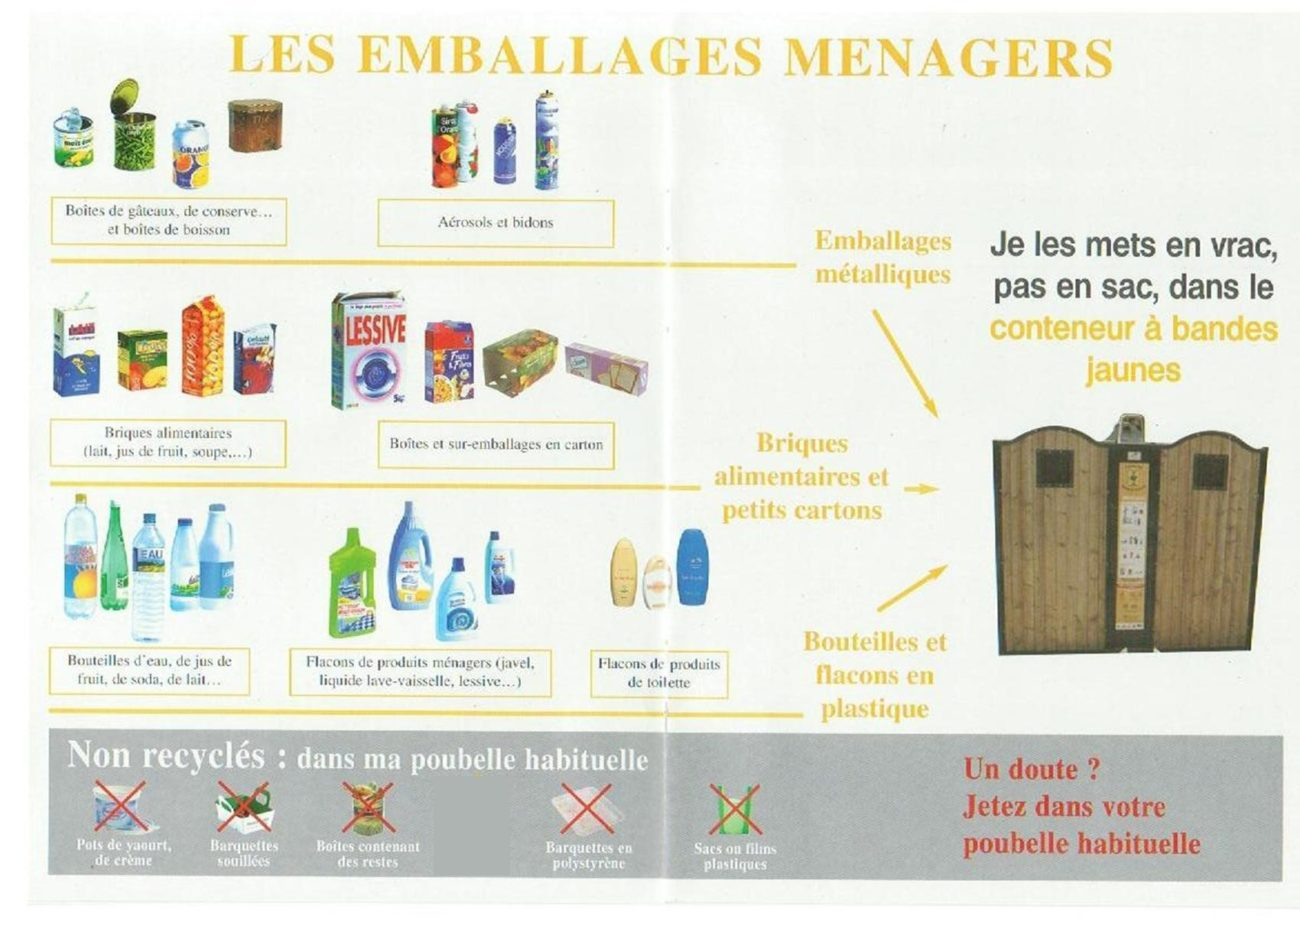 emballages-menagers